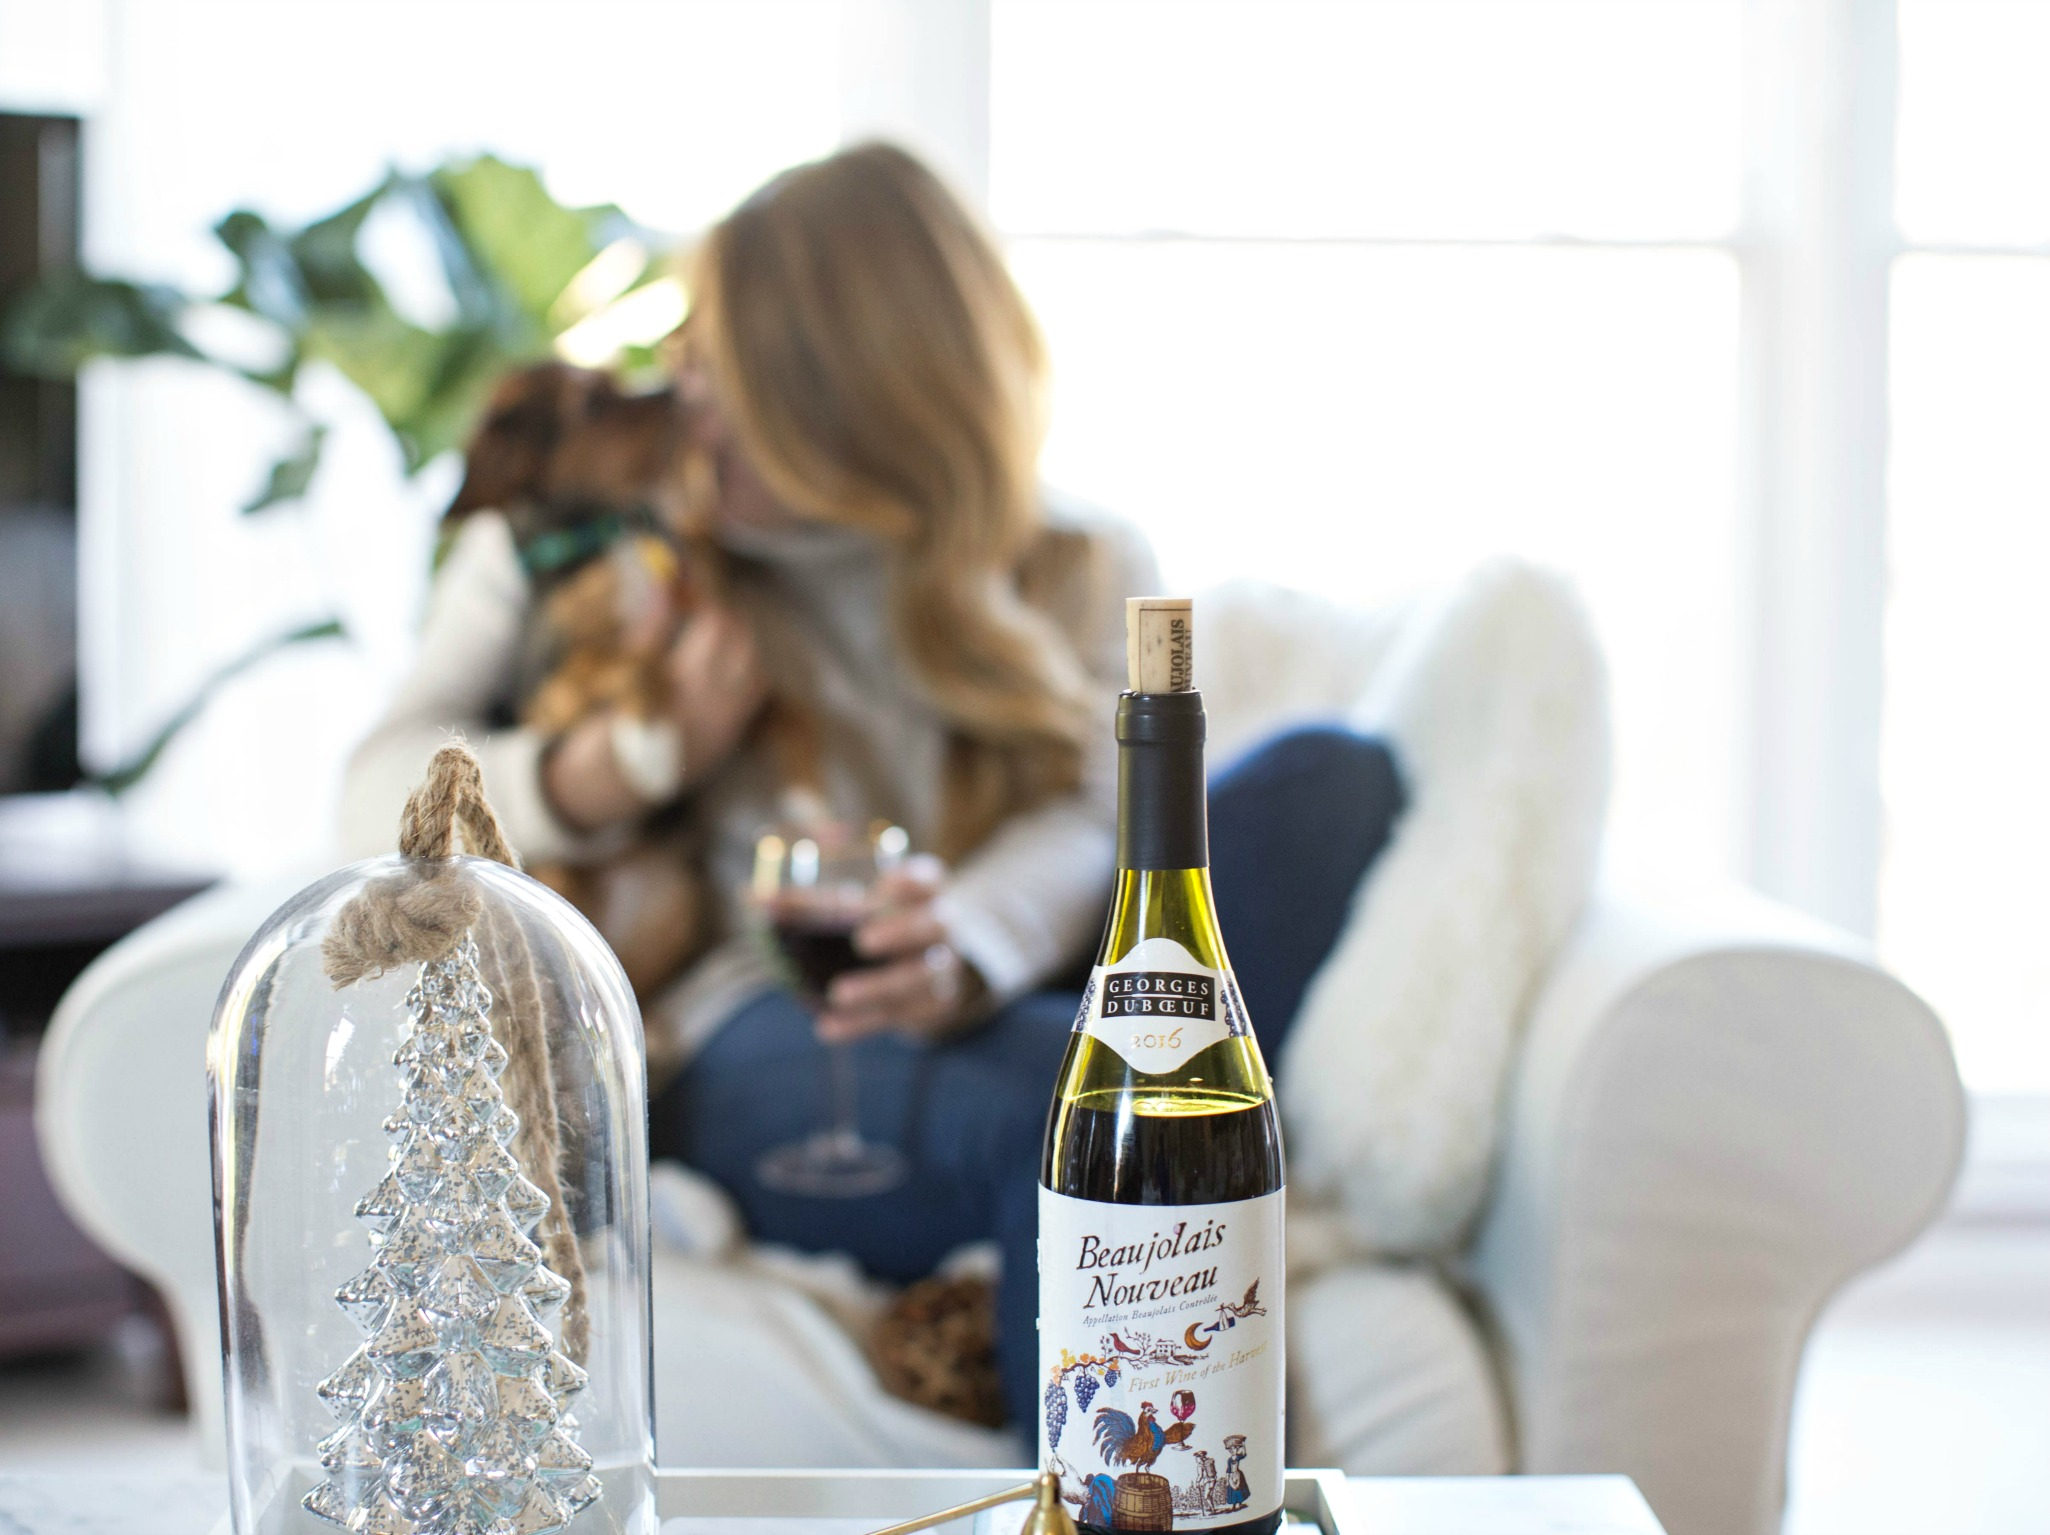 beaujolais-nouveau-wine - 3 Awesome Holiday Bar Cart Ideas by North Carolina style blogger Coffee Beans and Bobby Pins